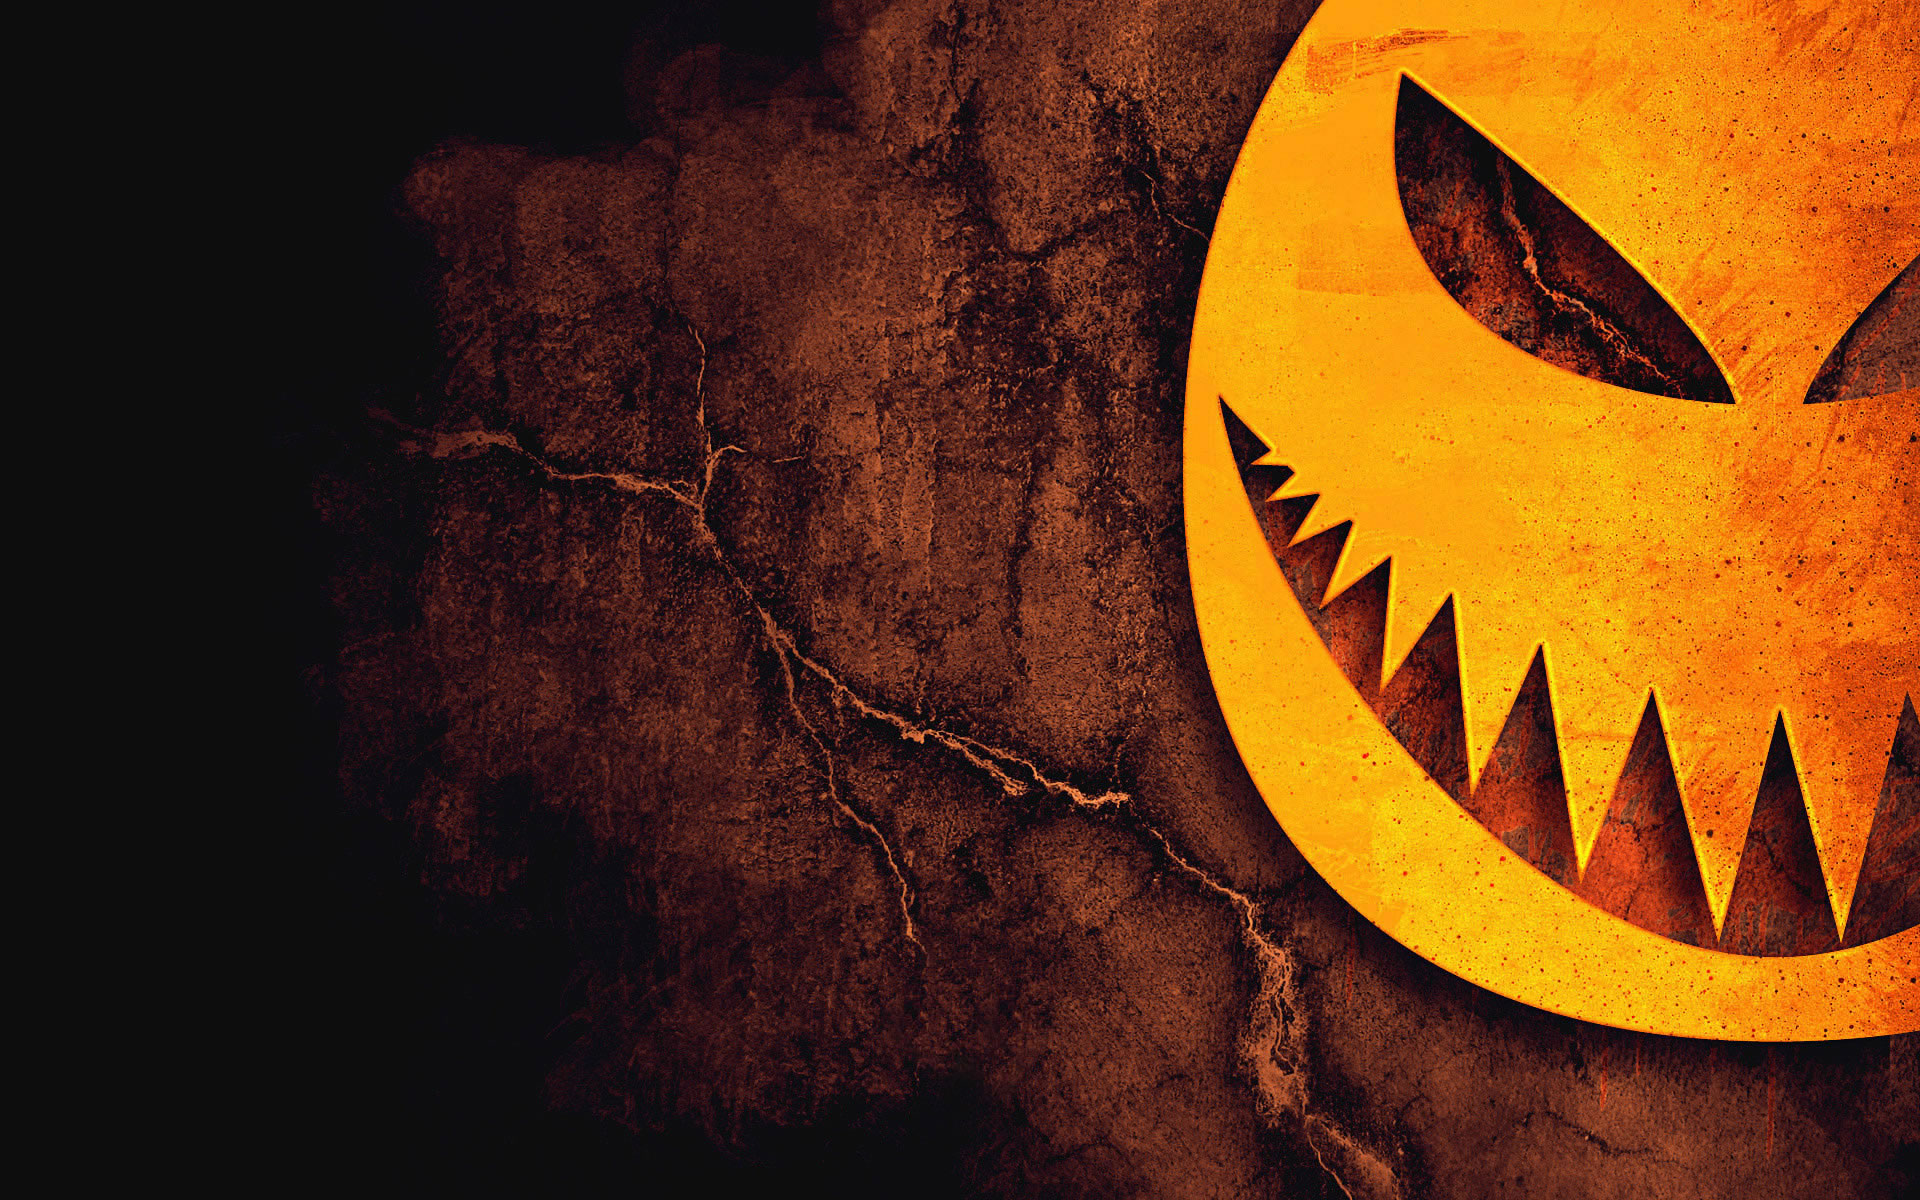 Wallpaper Calabaza Halloween.